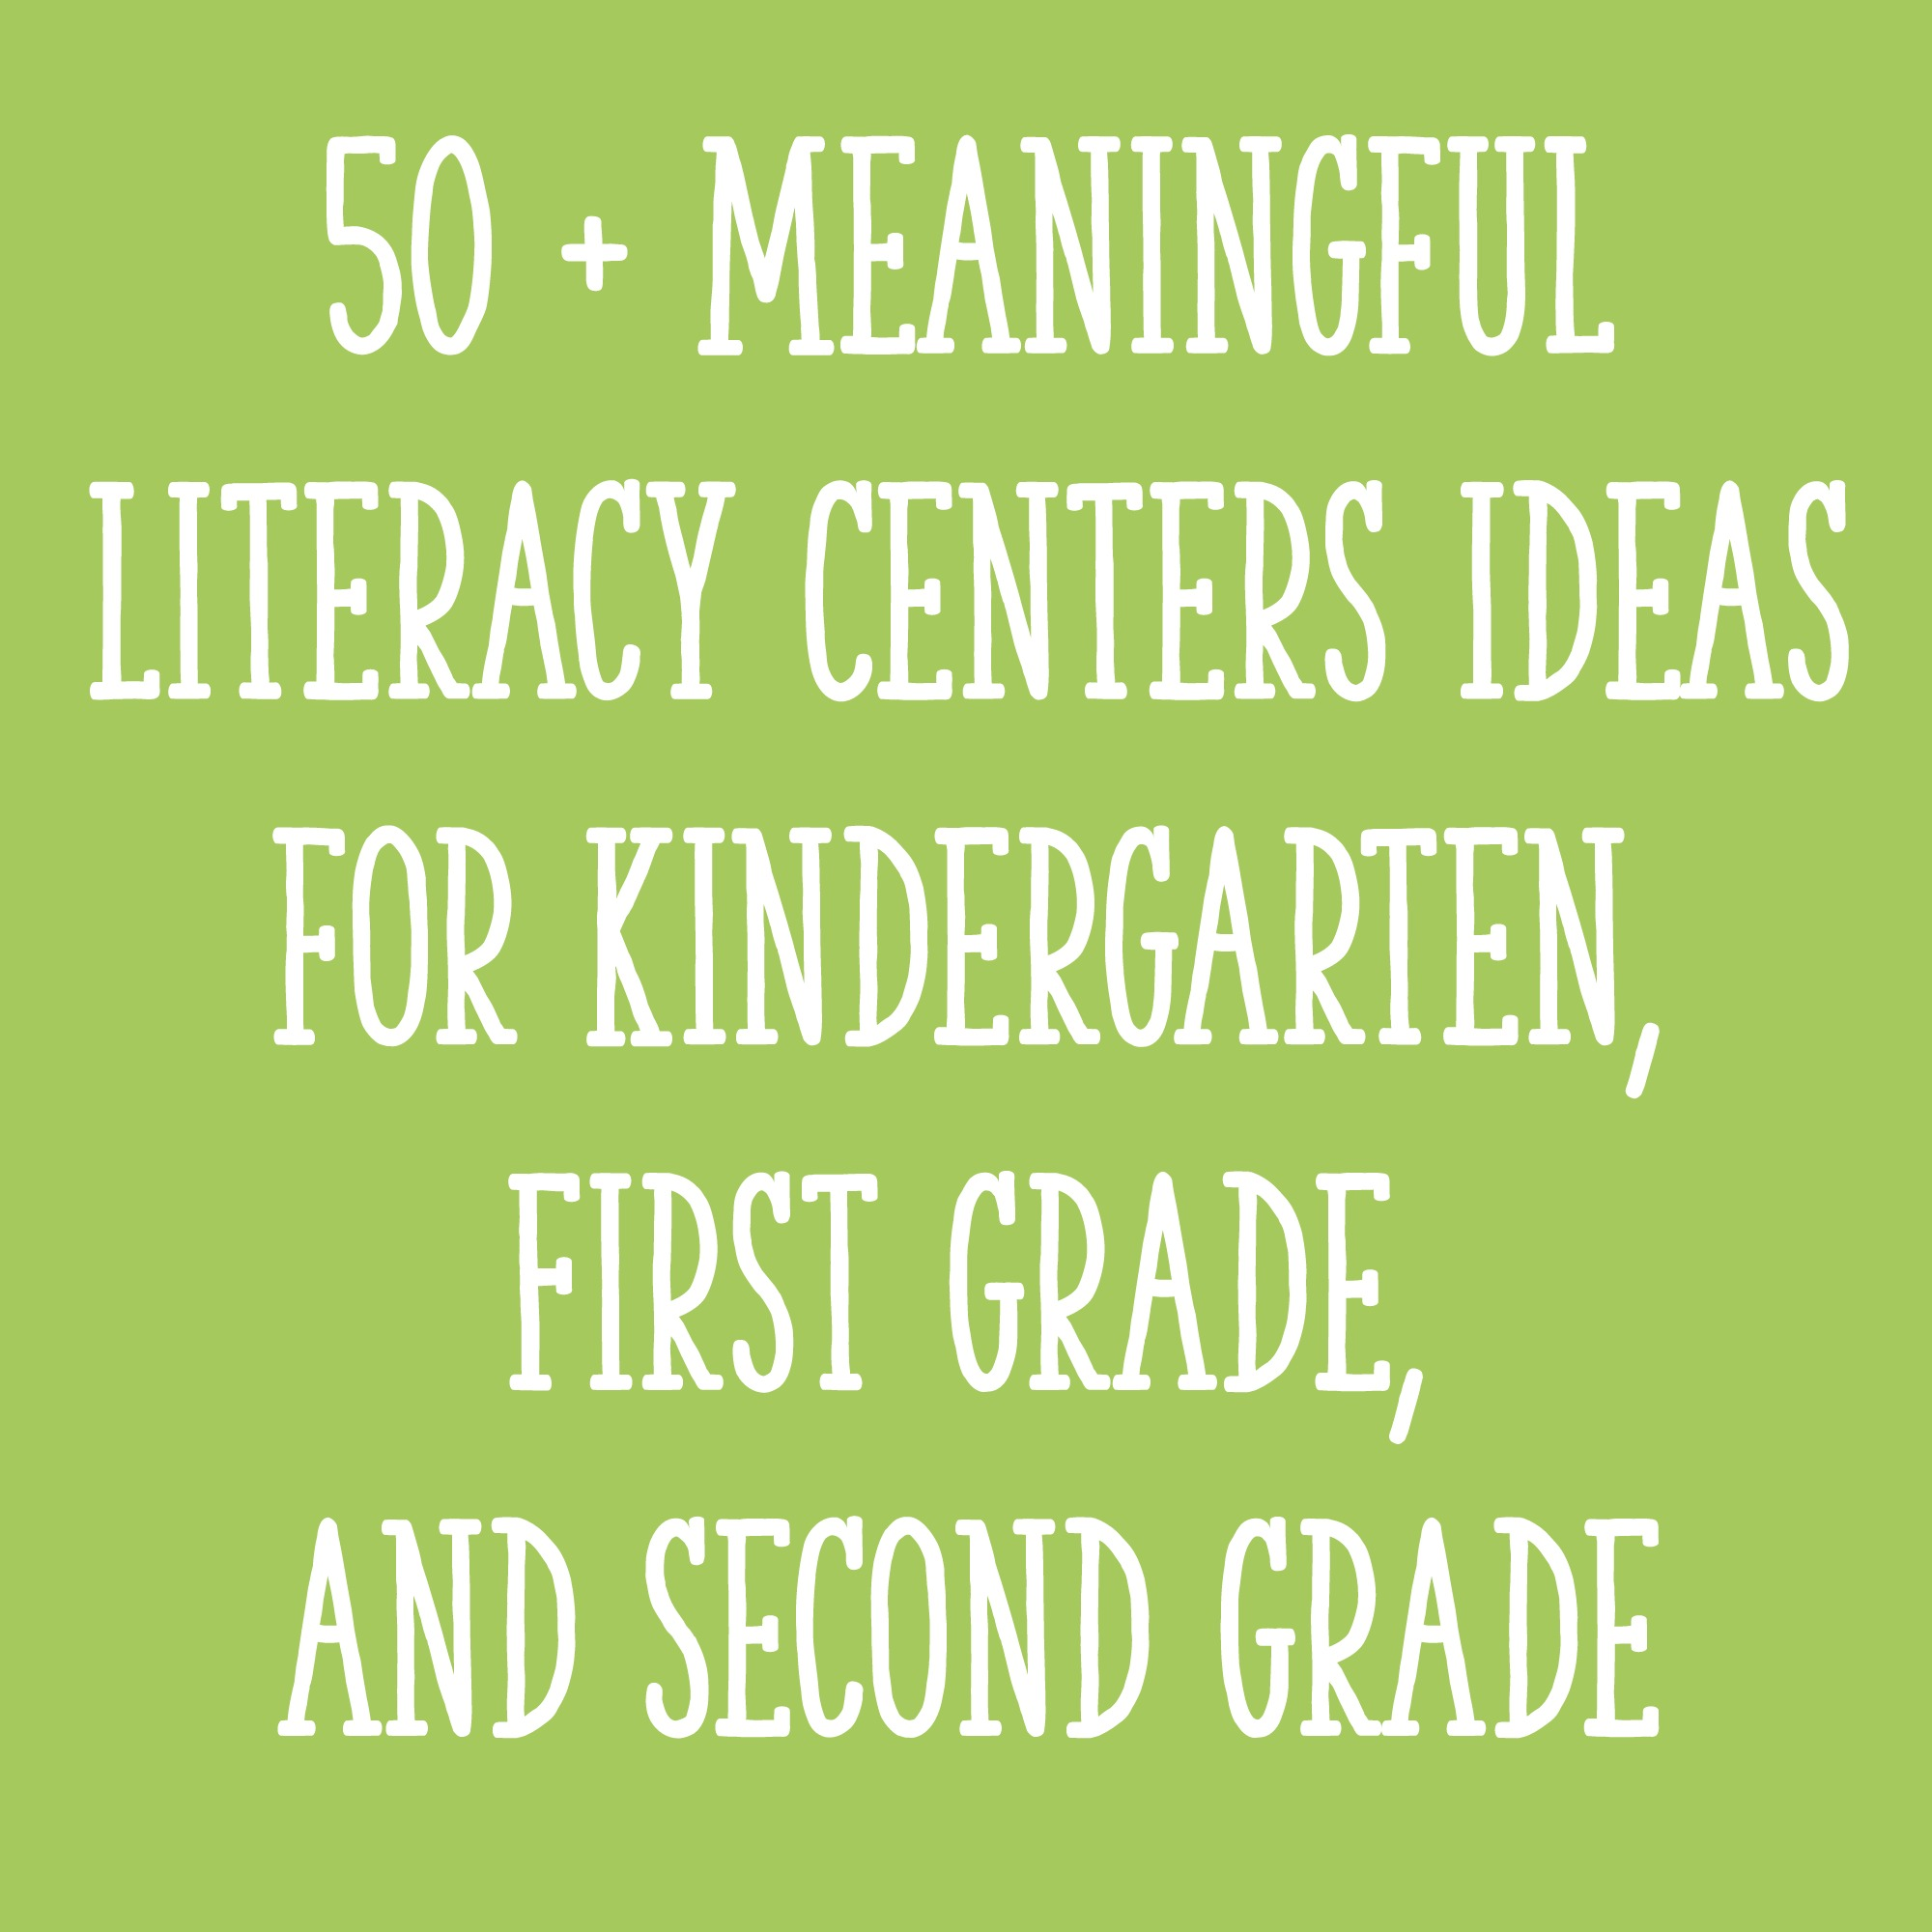 picture about Printable Literacy Centers First Grade named 50 + Significant Literacy Facilities Guidelines for Kindergarten